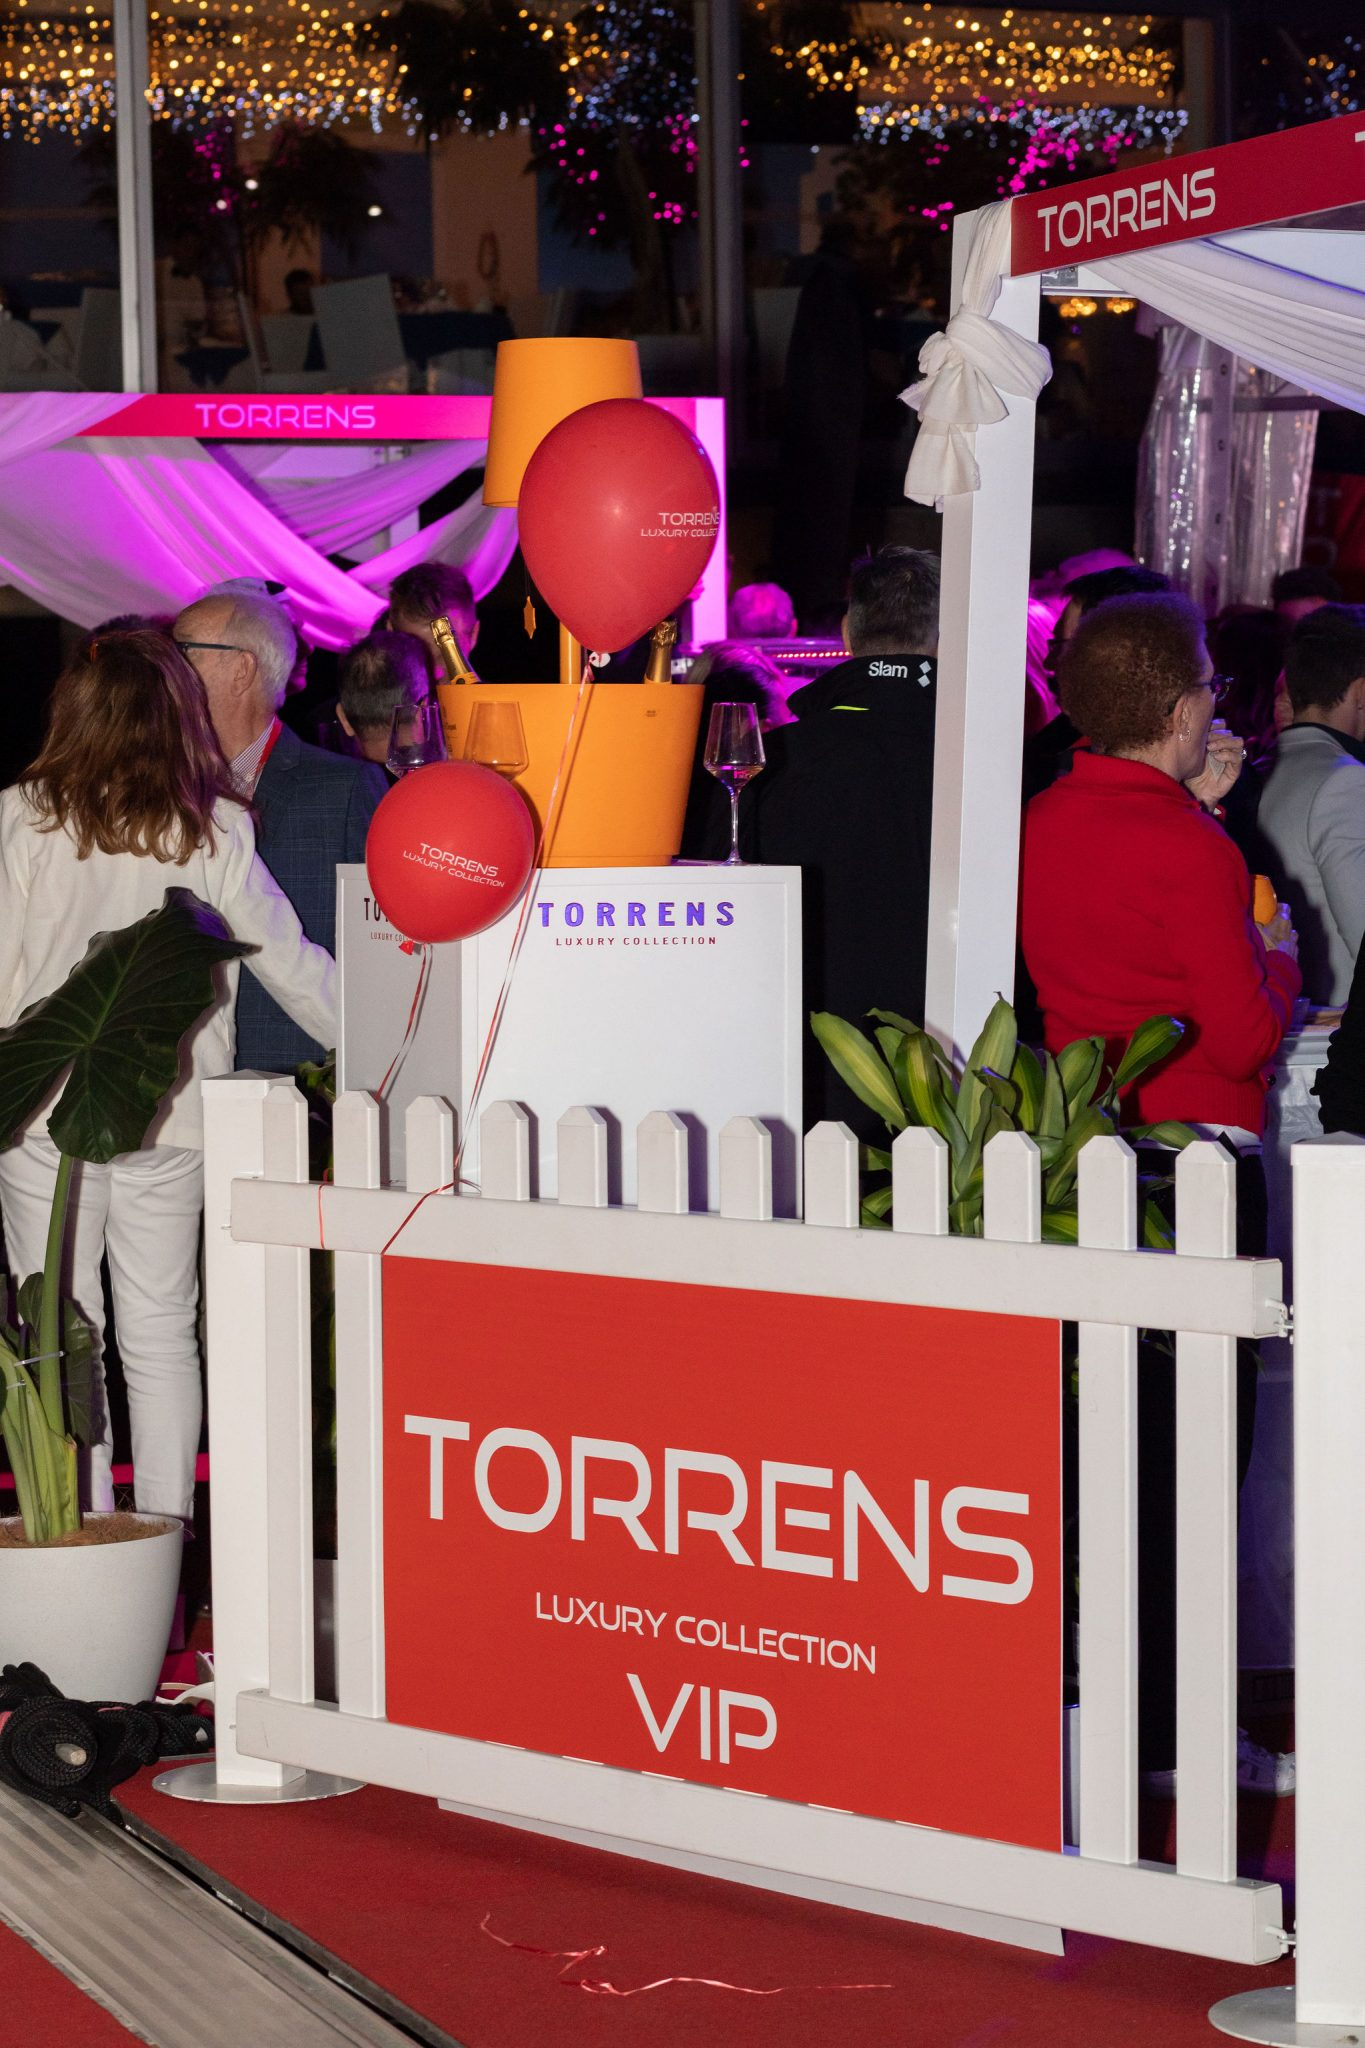 Sign for the Torrens VIP party